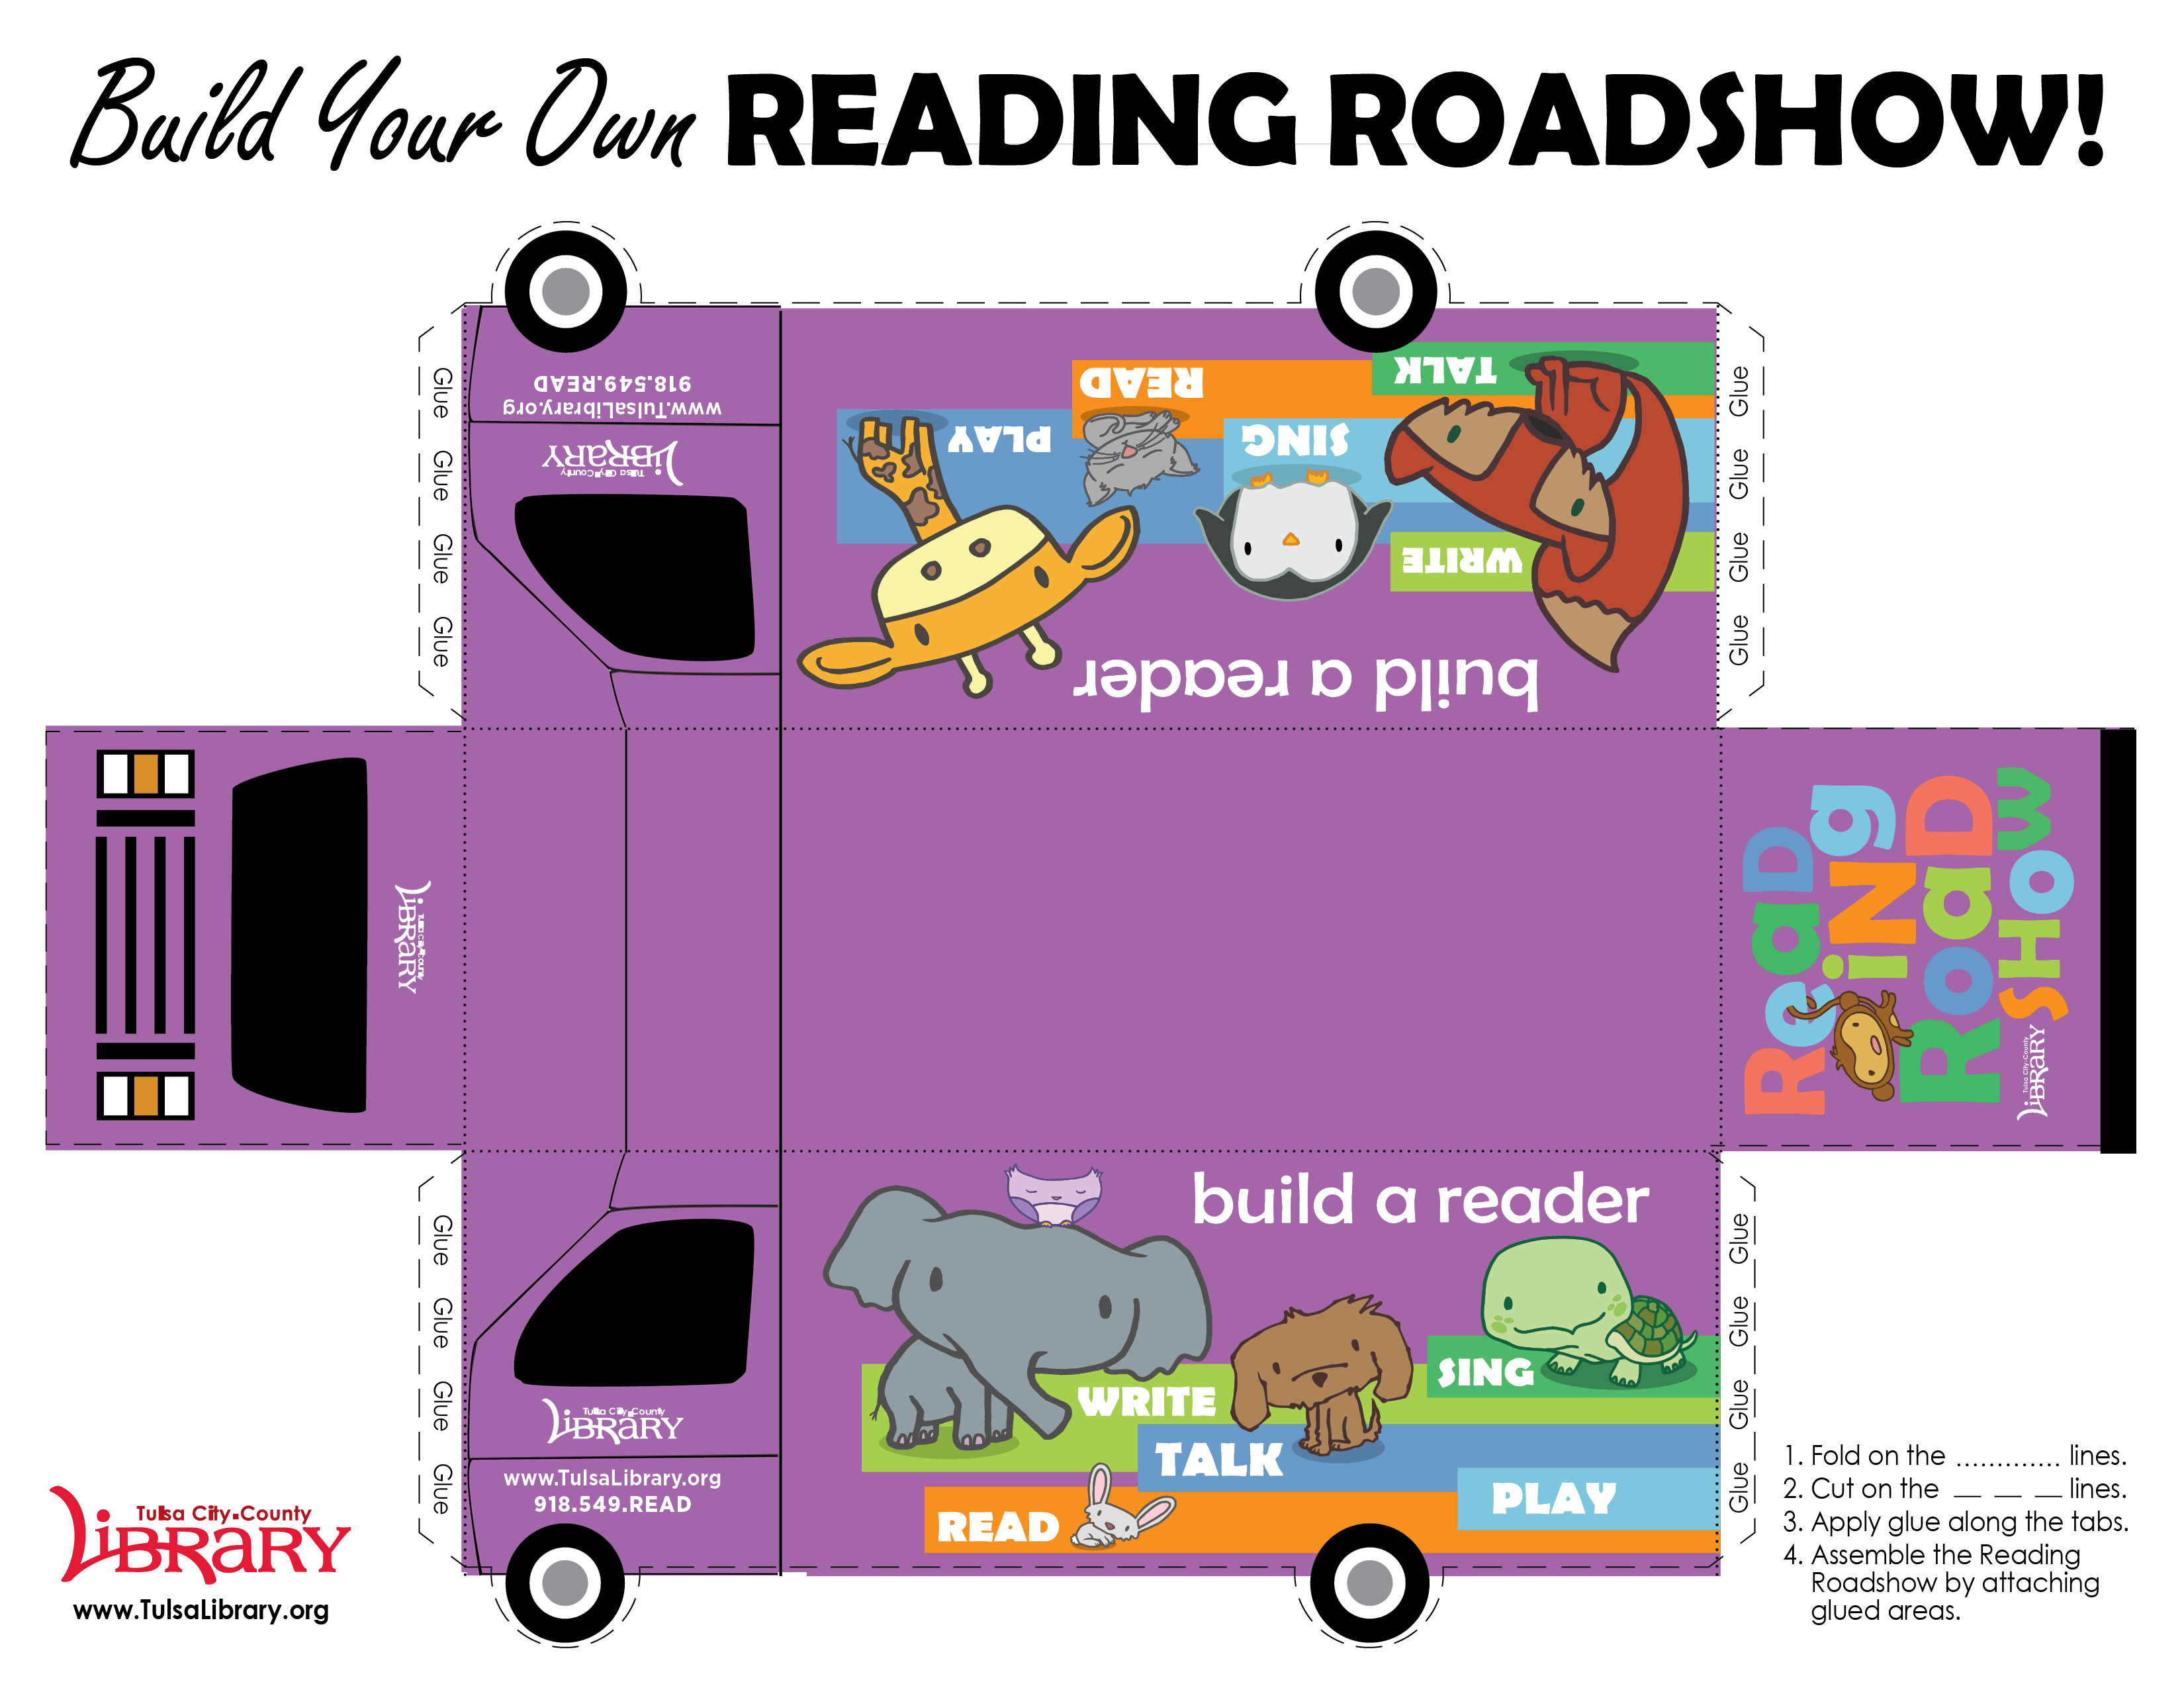 Build Your Own Reading Roadshow